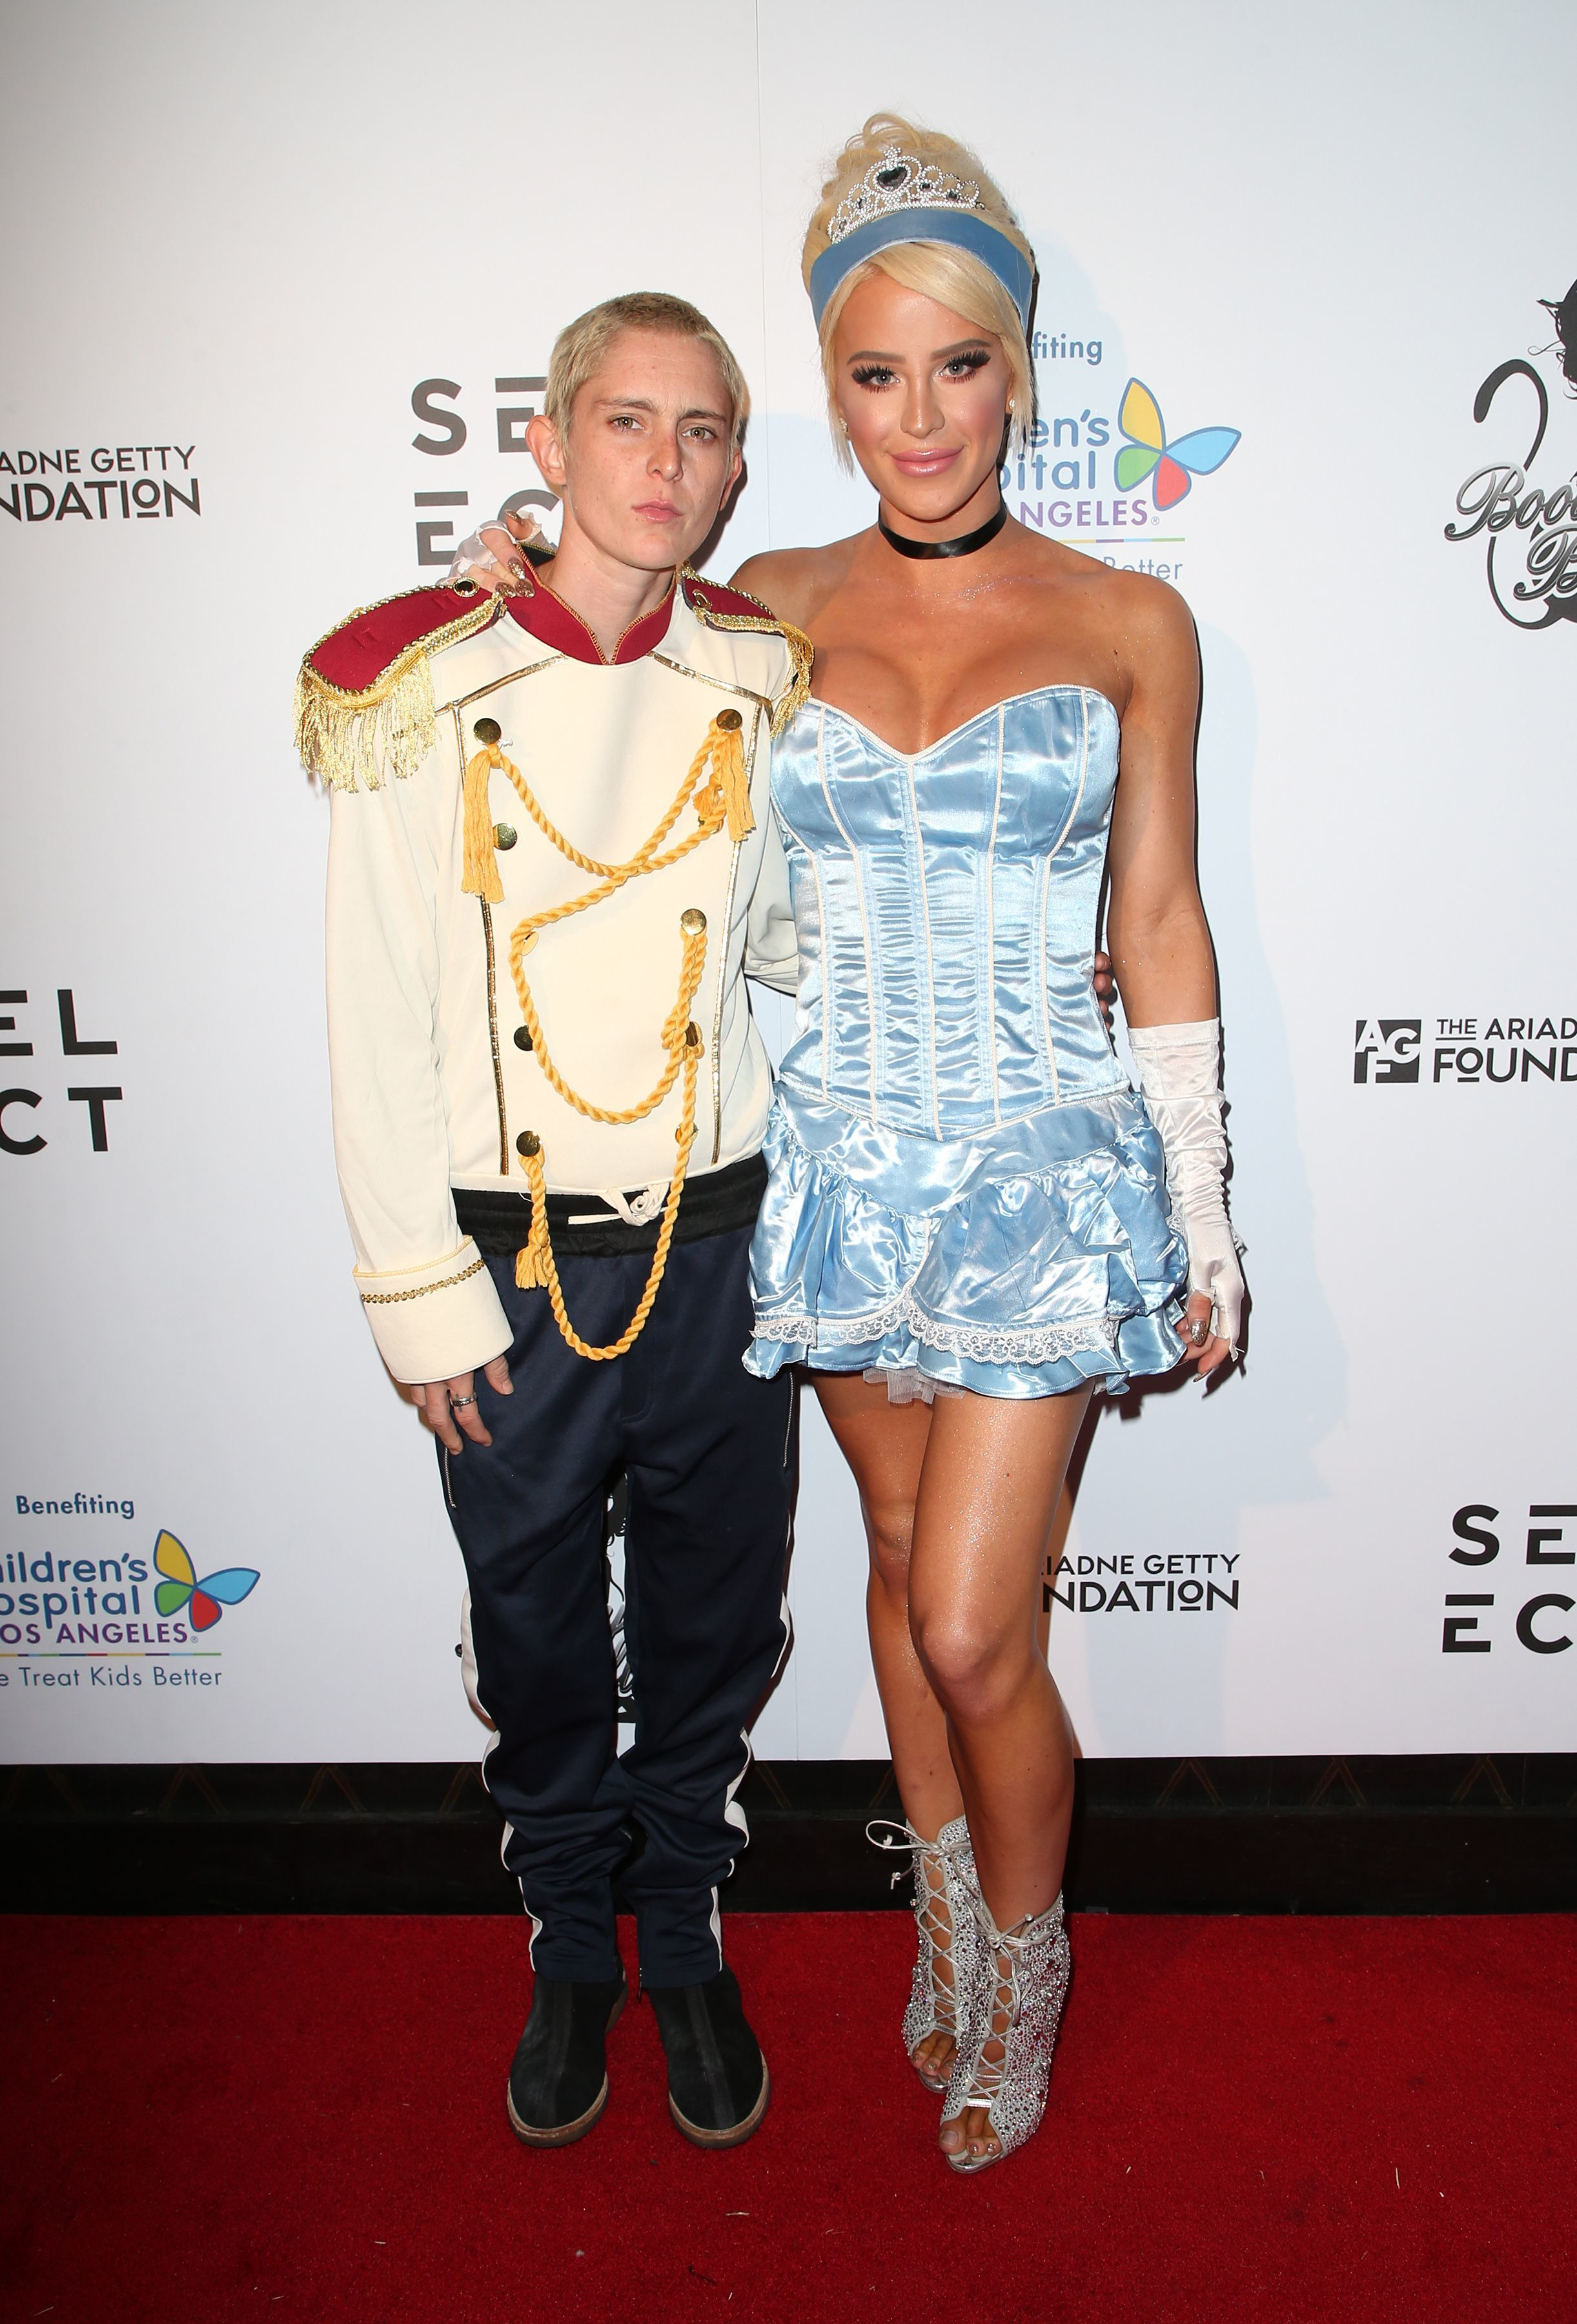 Nats Getty and Gigi Gorgeous appeared at the Haunted 'Carn Evil For Good' Halloween Bash Benefiting Transyouth Health and Development in Los Angeles on Oct. 29, 2017.